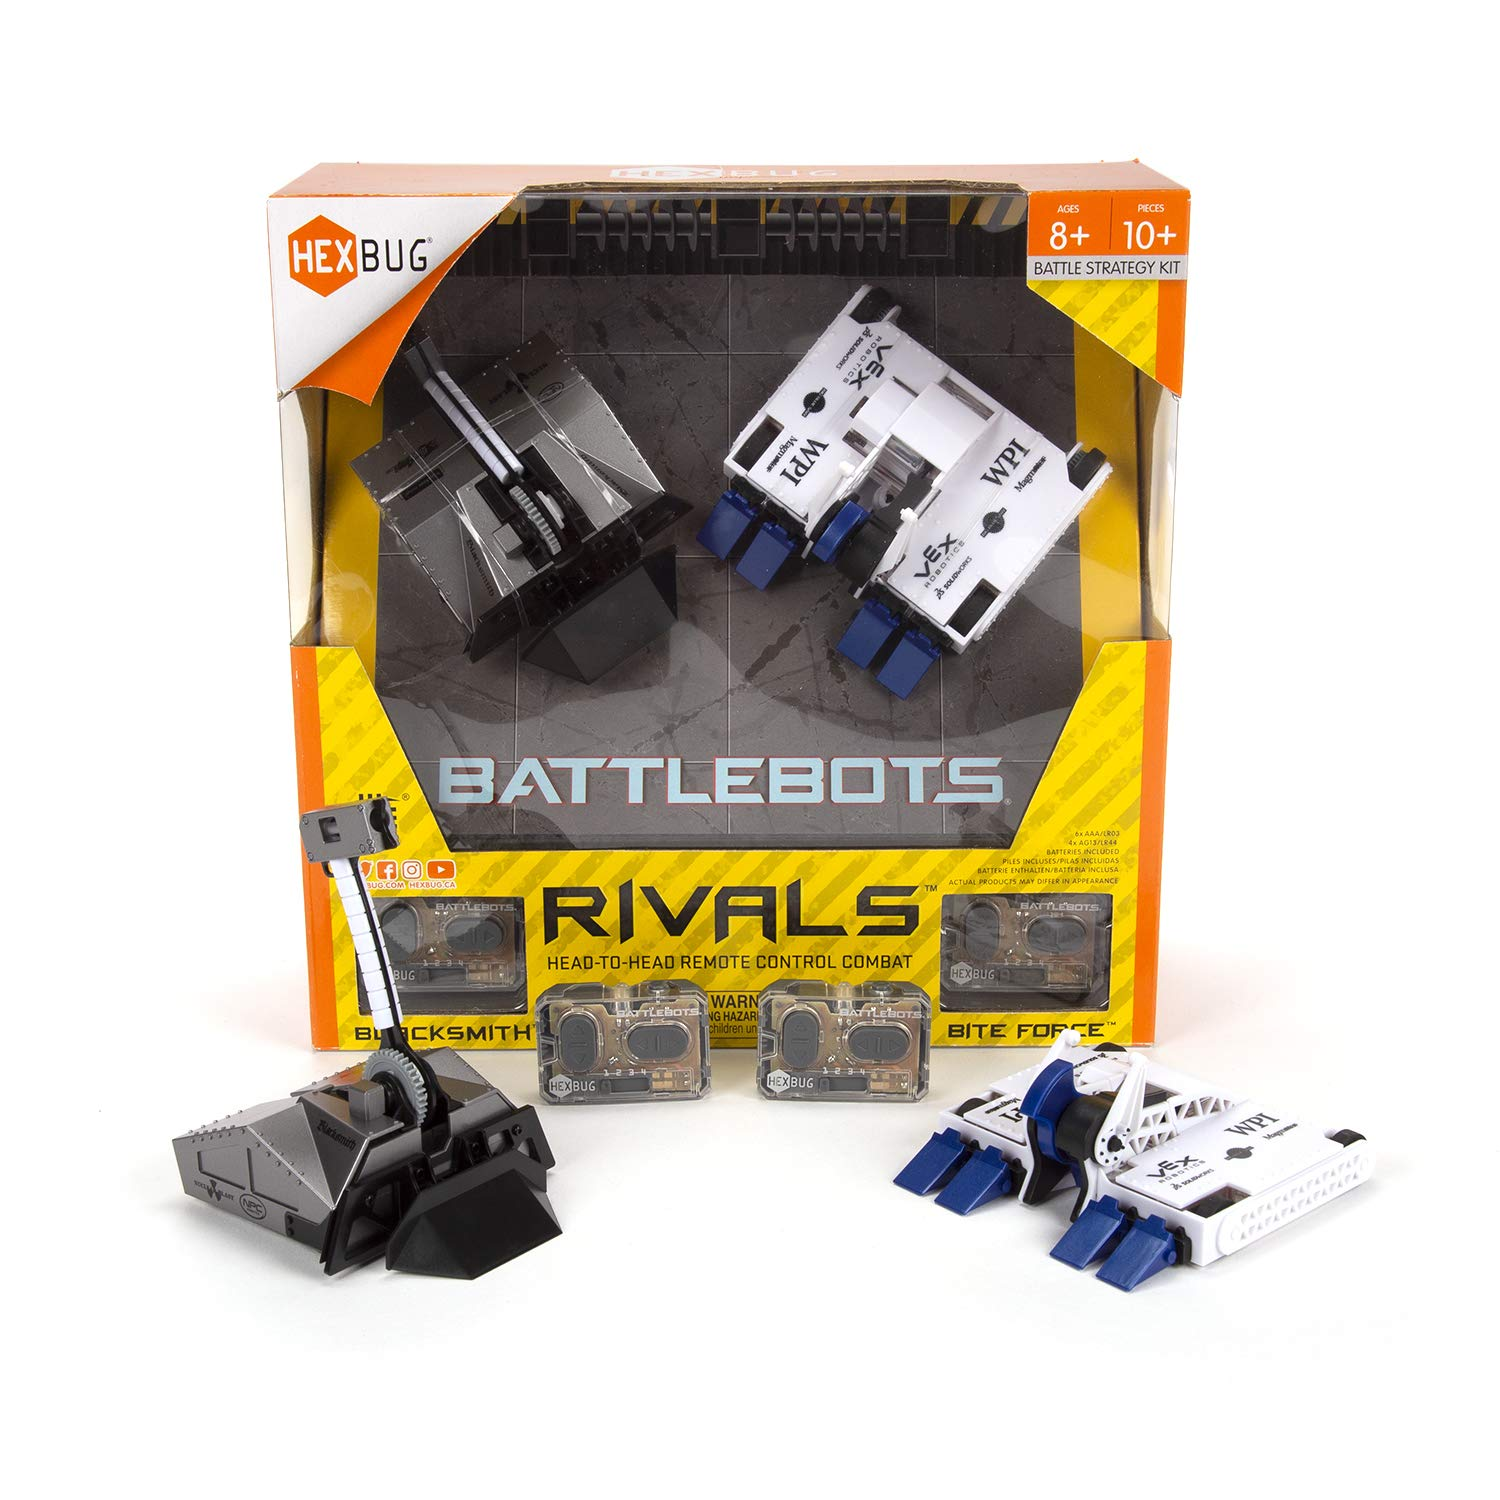 HEXBUG BattleBots Rivals 4.0 (Blacksmith and Biteforce) Toys for Kids, Fun Battle Bot Hex Bugs Black Smith and Bite Force by HEXBUG (Image #2)